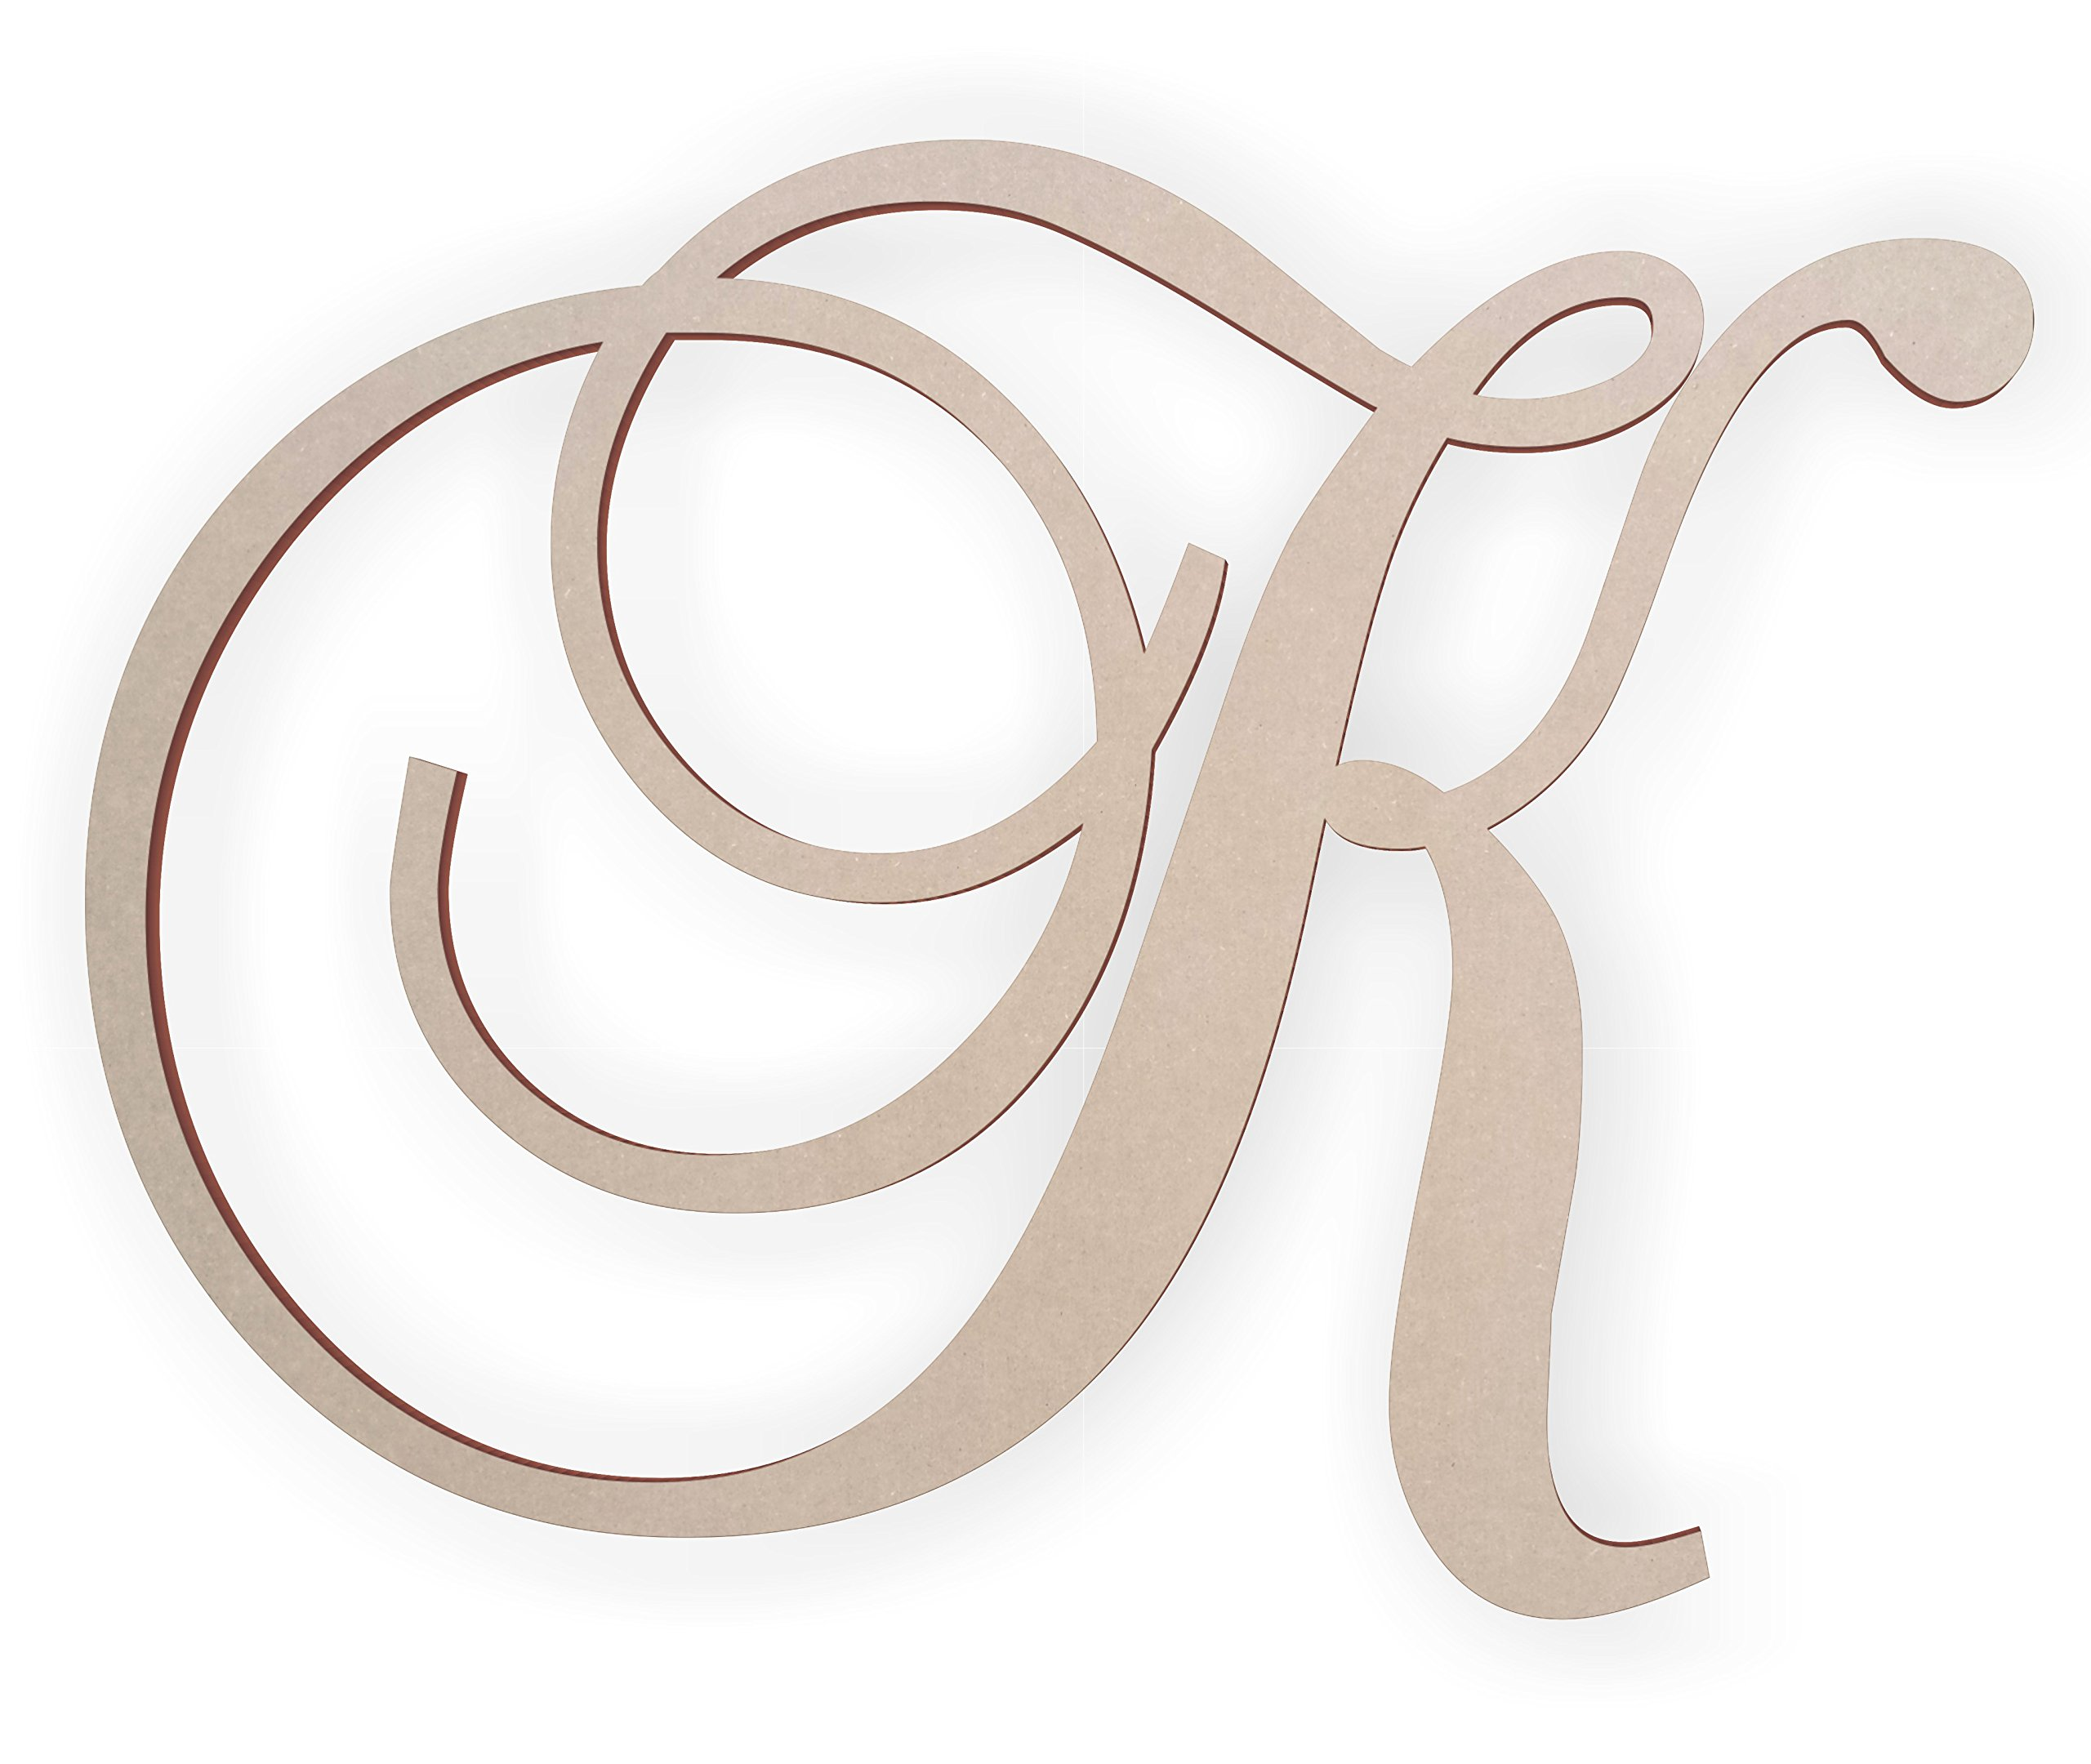 Jess and Jessica Wooden Letter K, Wooden Monogram Wall Hanging, Large Wooden Letters, Cursive Wood Letter